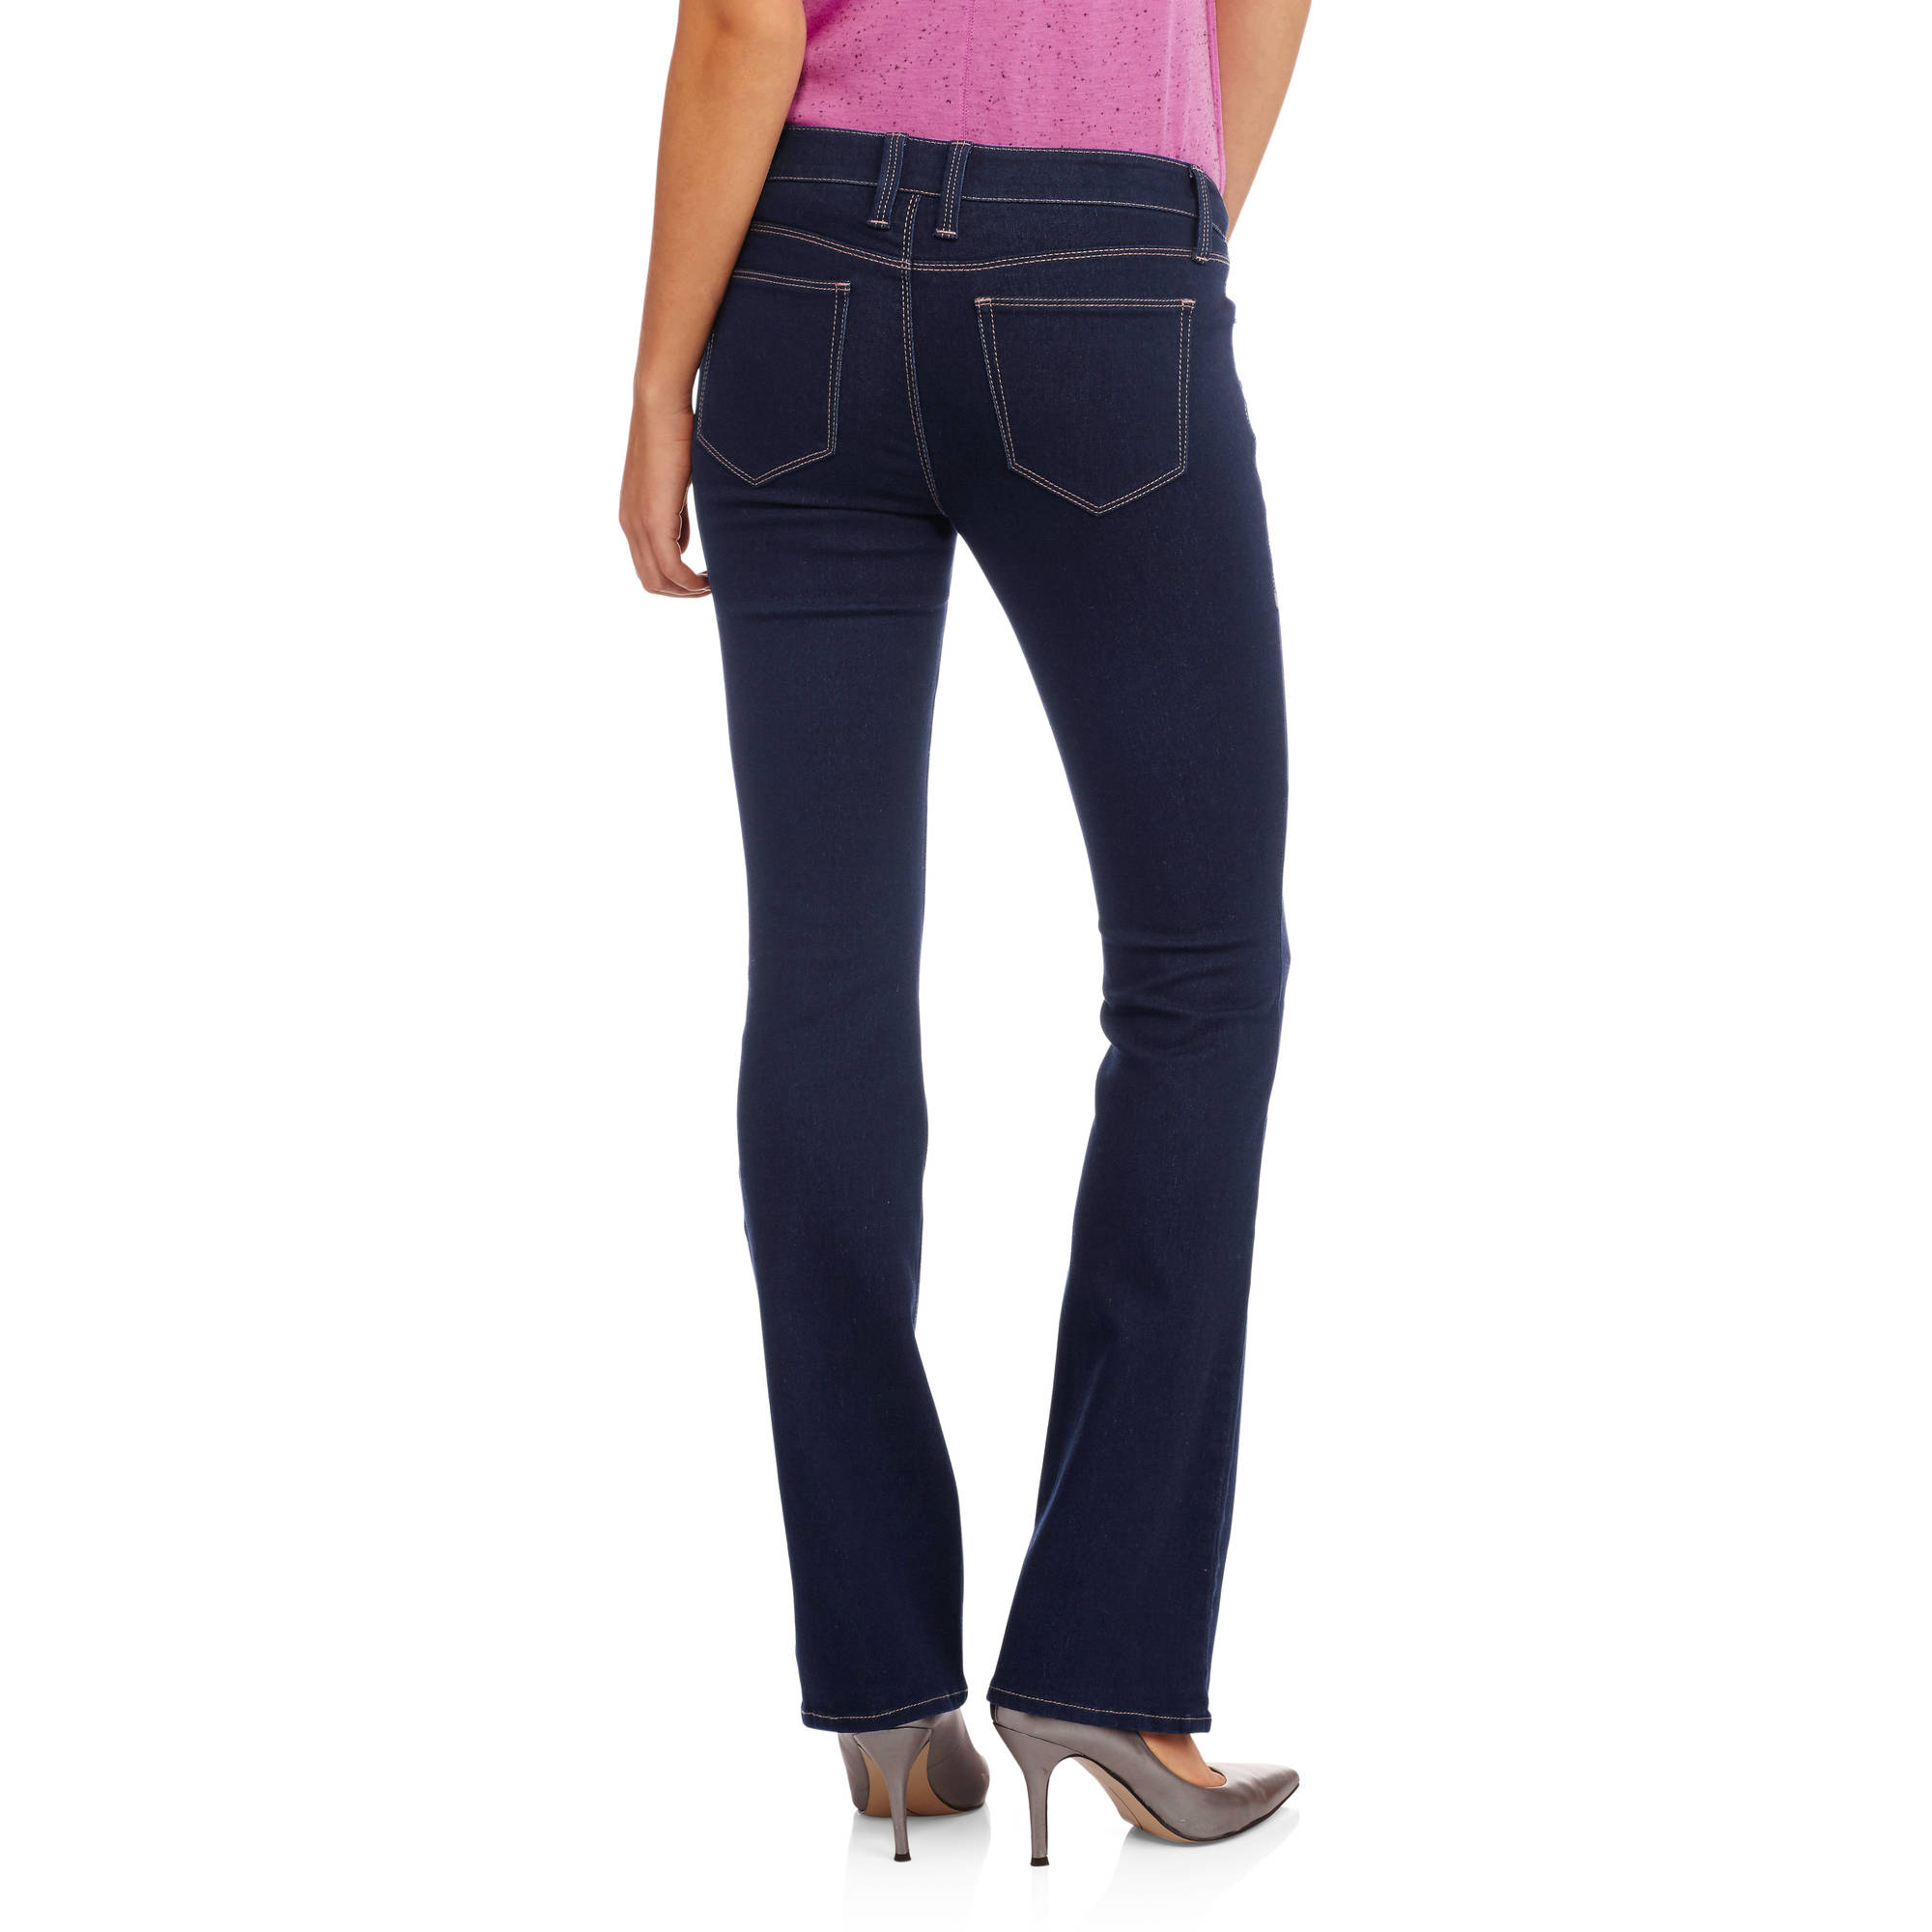 No Boundaries Juniors' Classic Slim Bootcut Jeans - Walmart.com